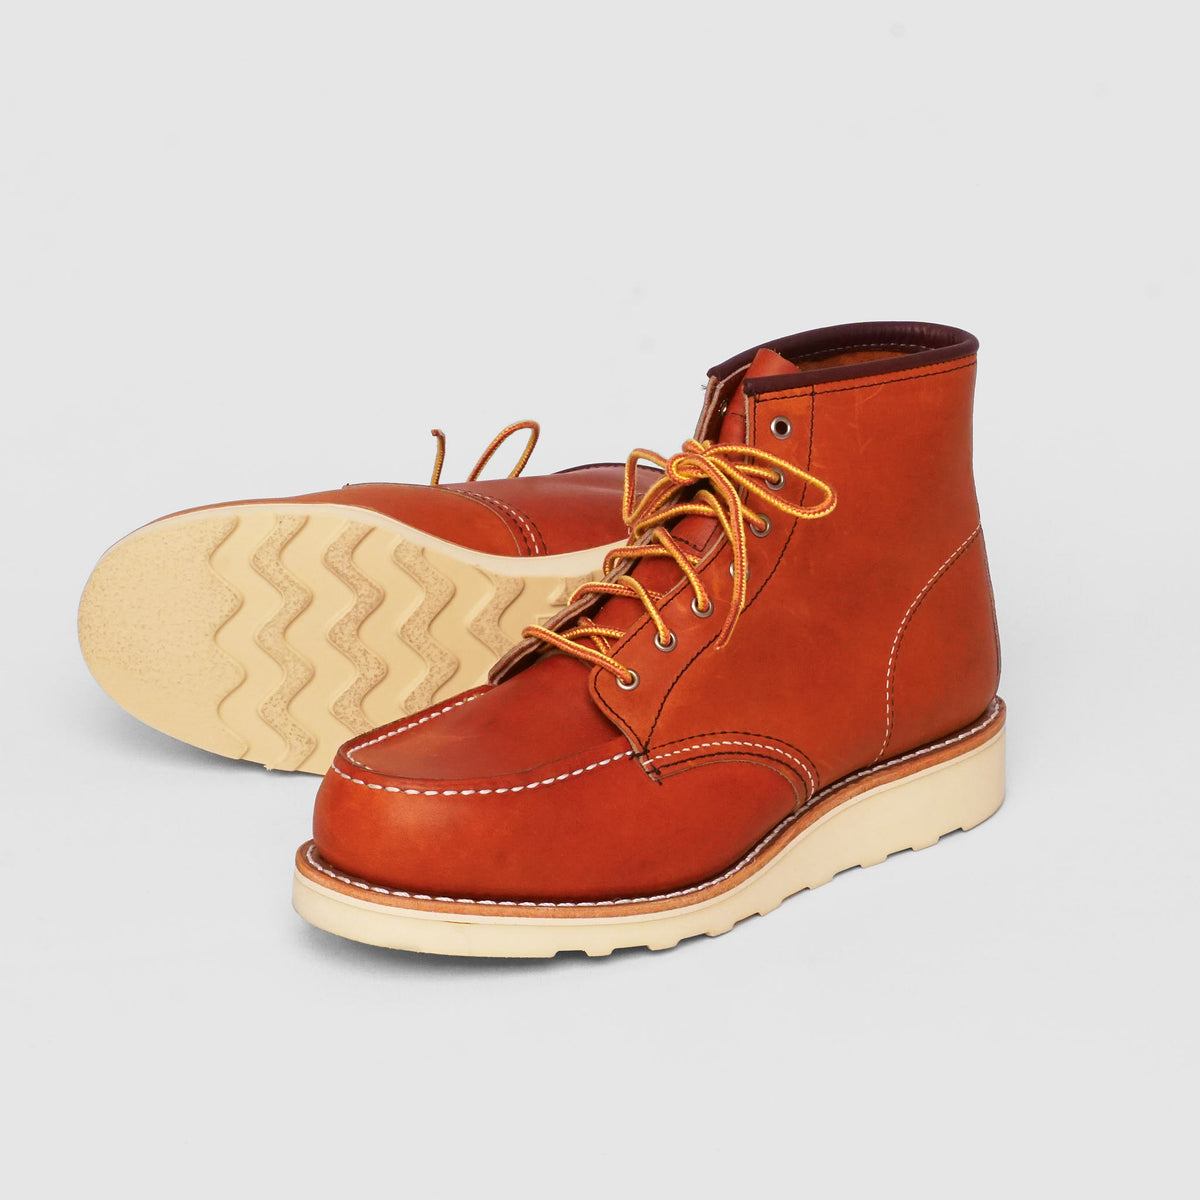 Red Wing Heritage Shoes Ladies Classic Moc-Toe, 3375, 3373